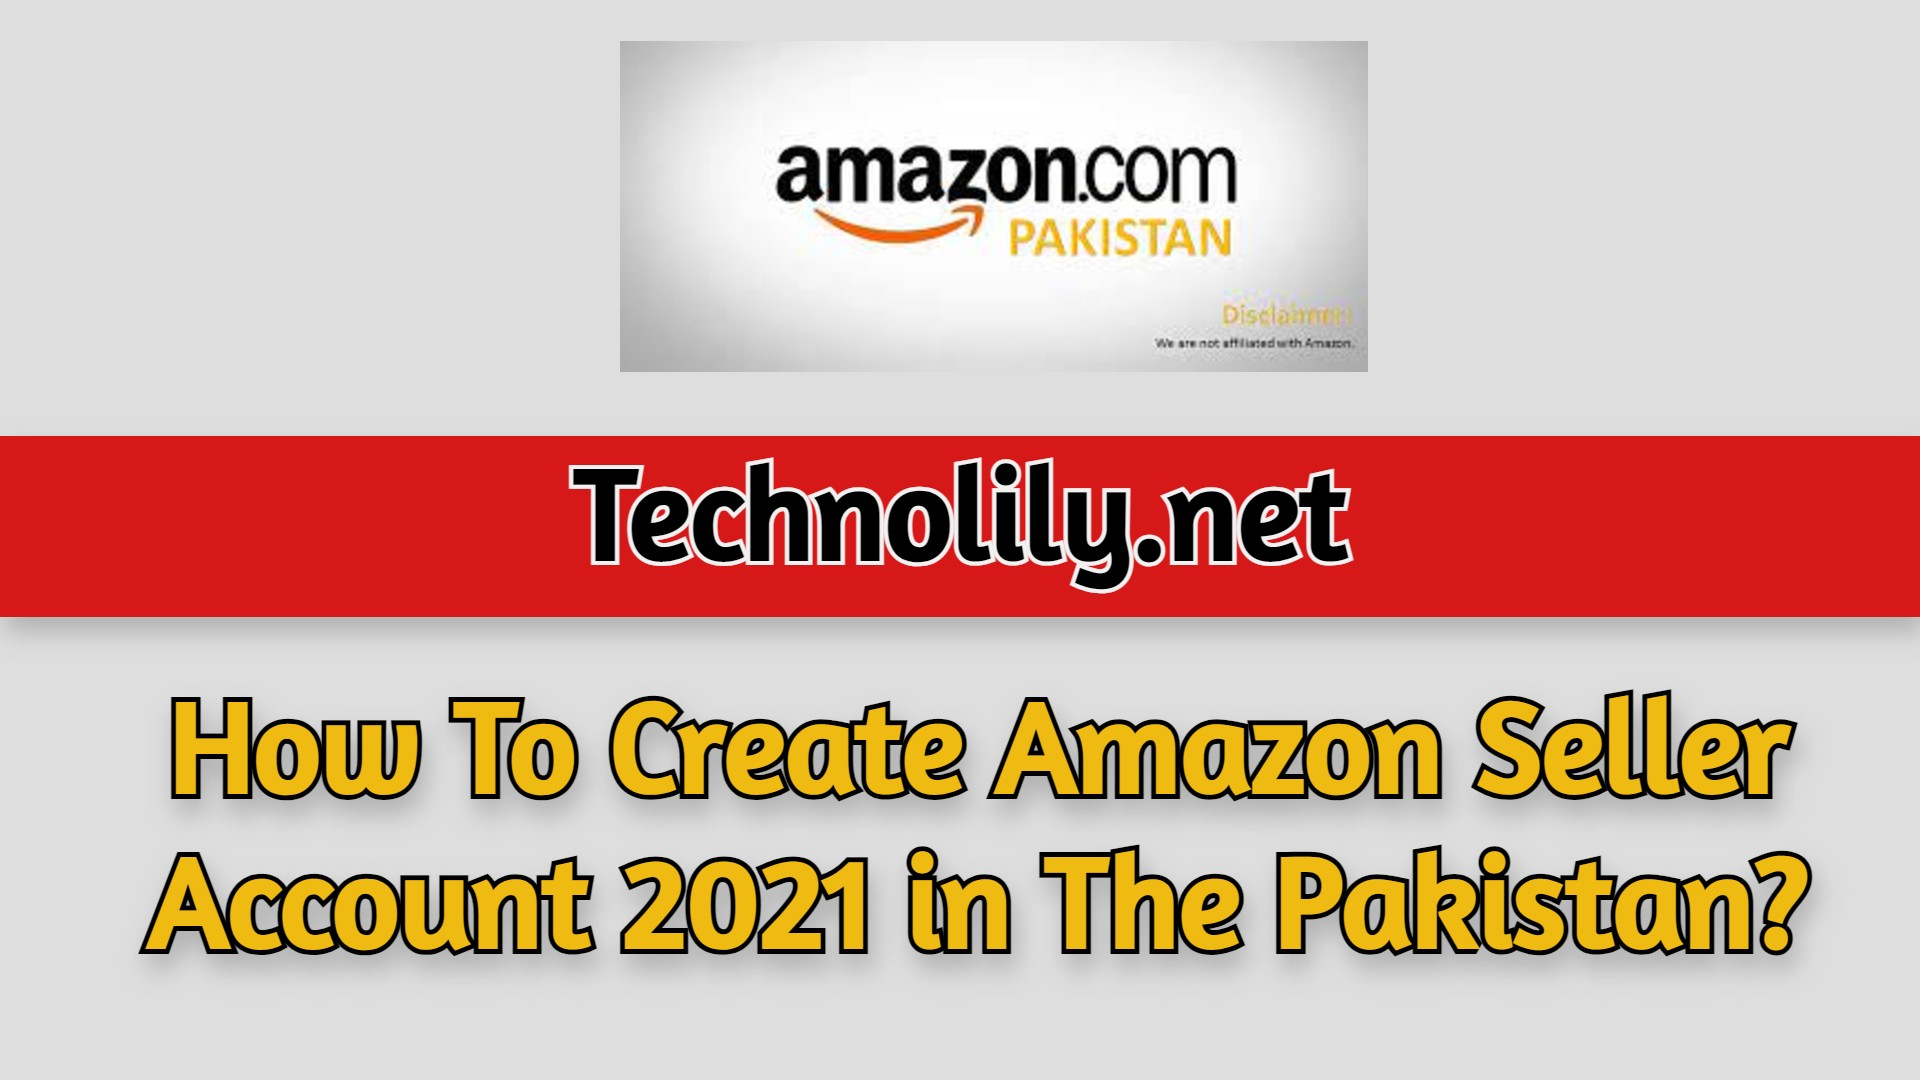 How To Create Amazon Seller Account 2021 in Pakistan?